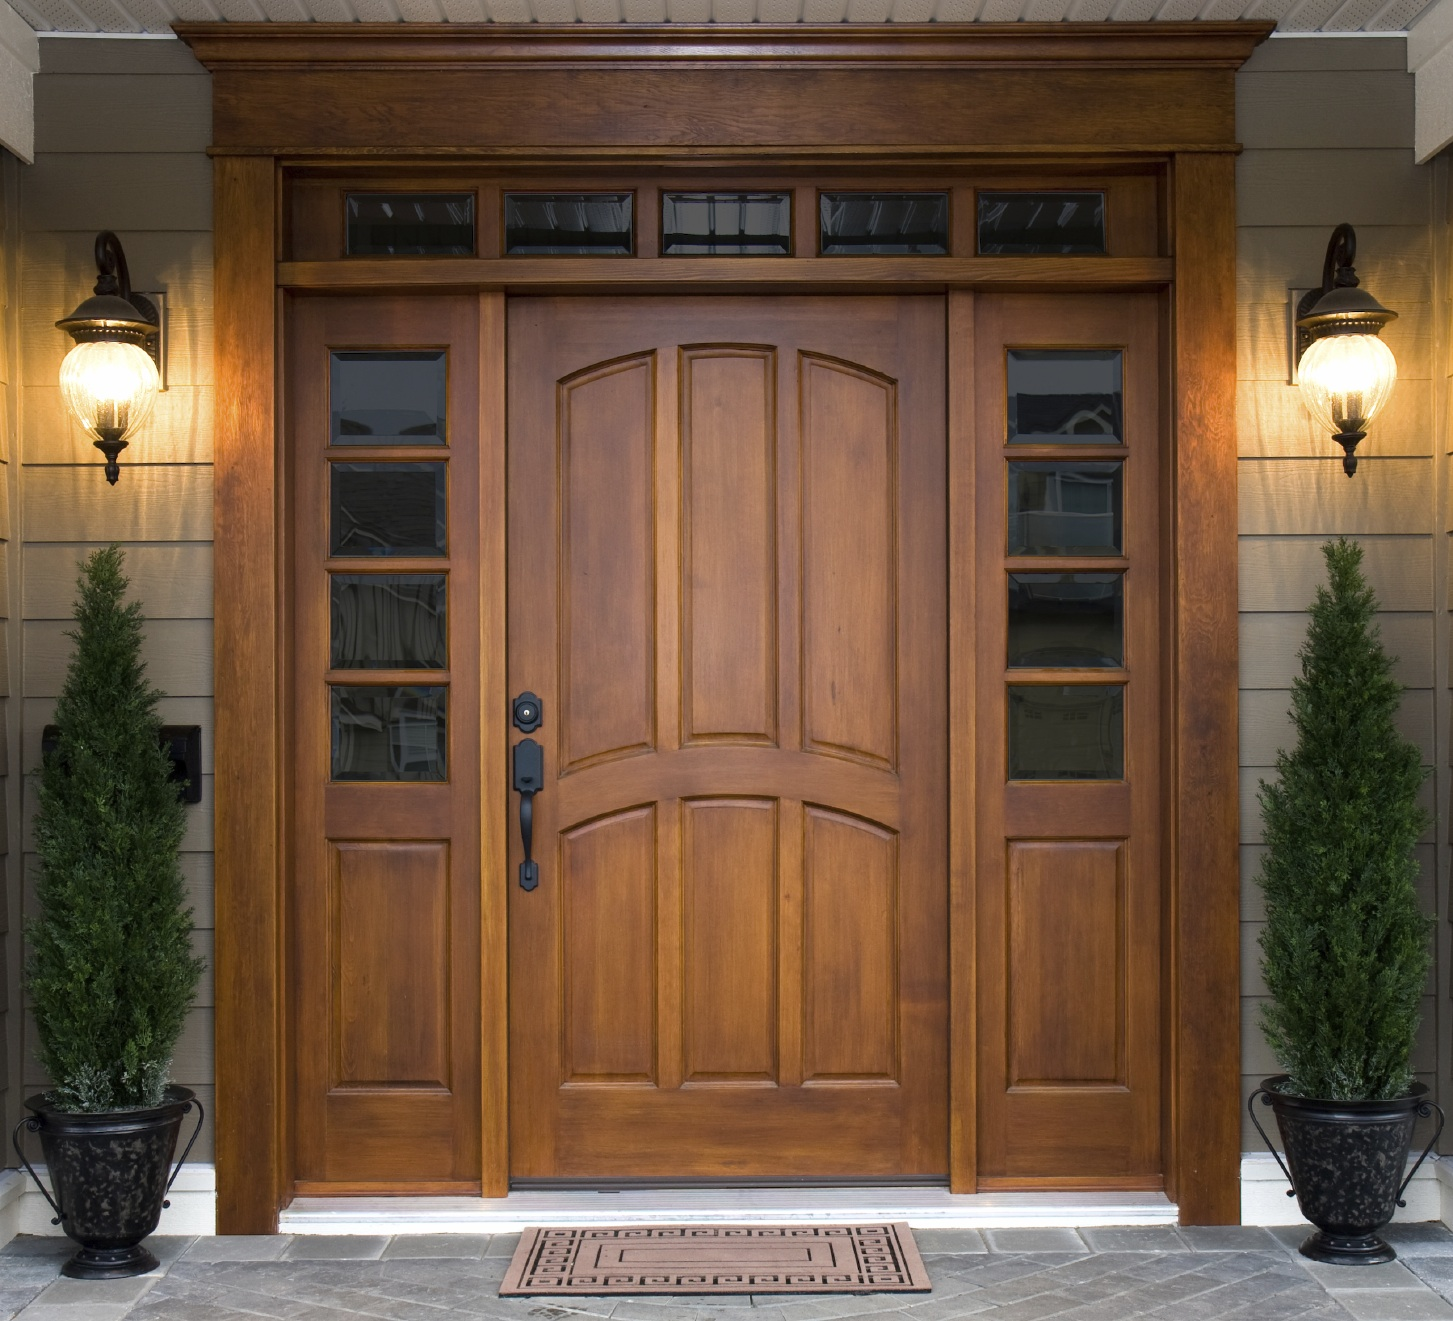 Rayn Properties Architectural Images. Sophisticated Front Door Design With  Bar ...